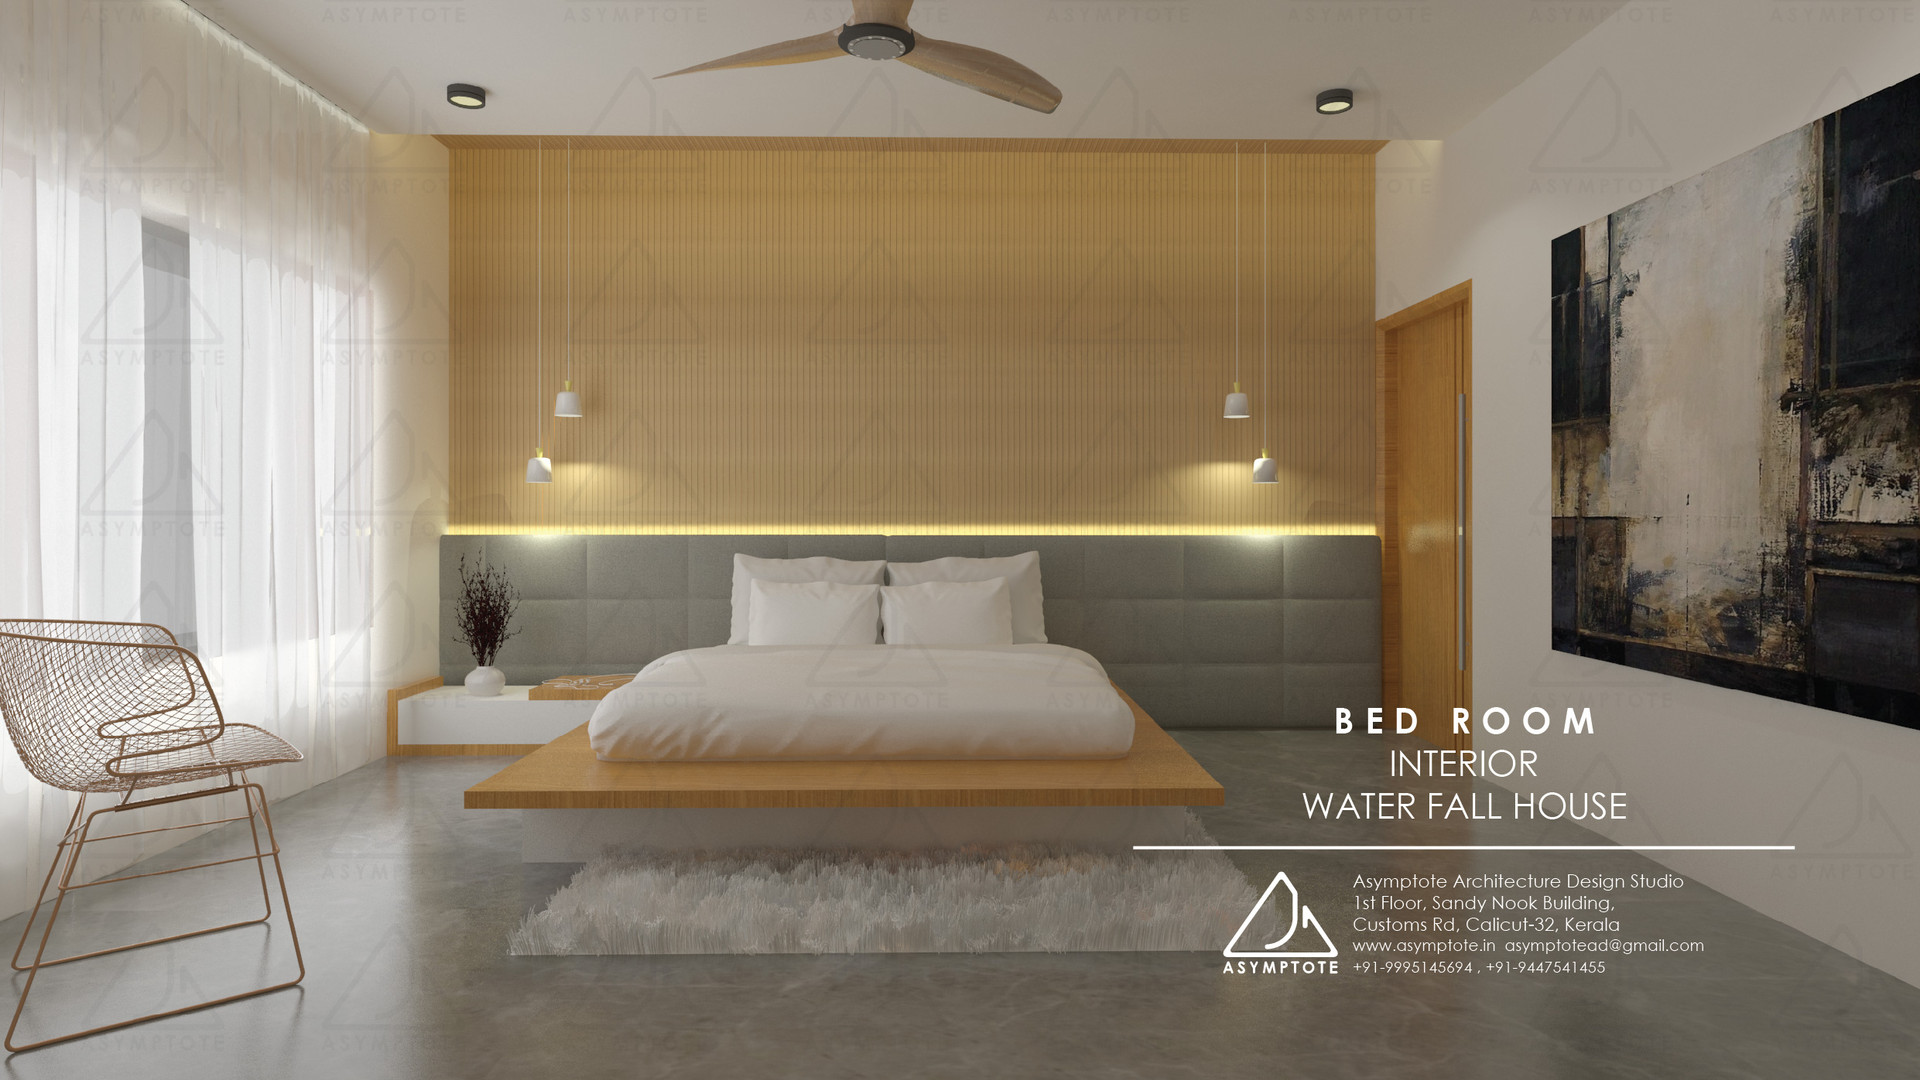 BED ROOM INTERIOR AND OTHER SPACE-07.jpg